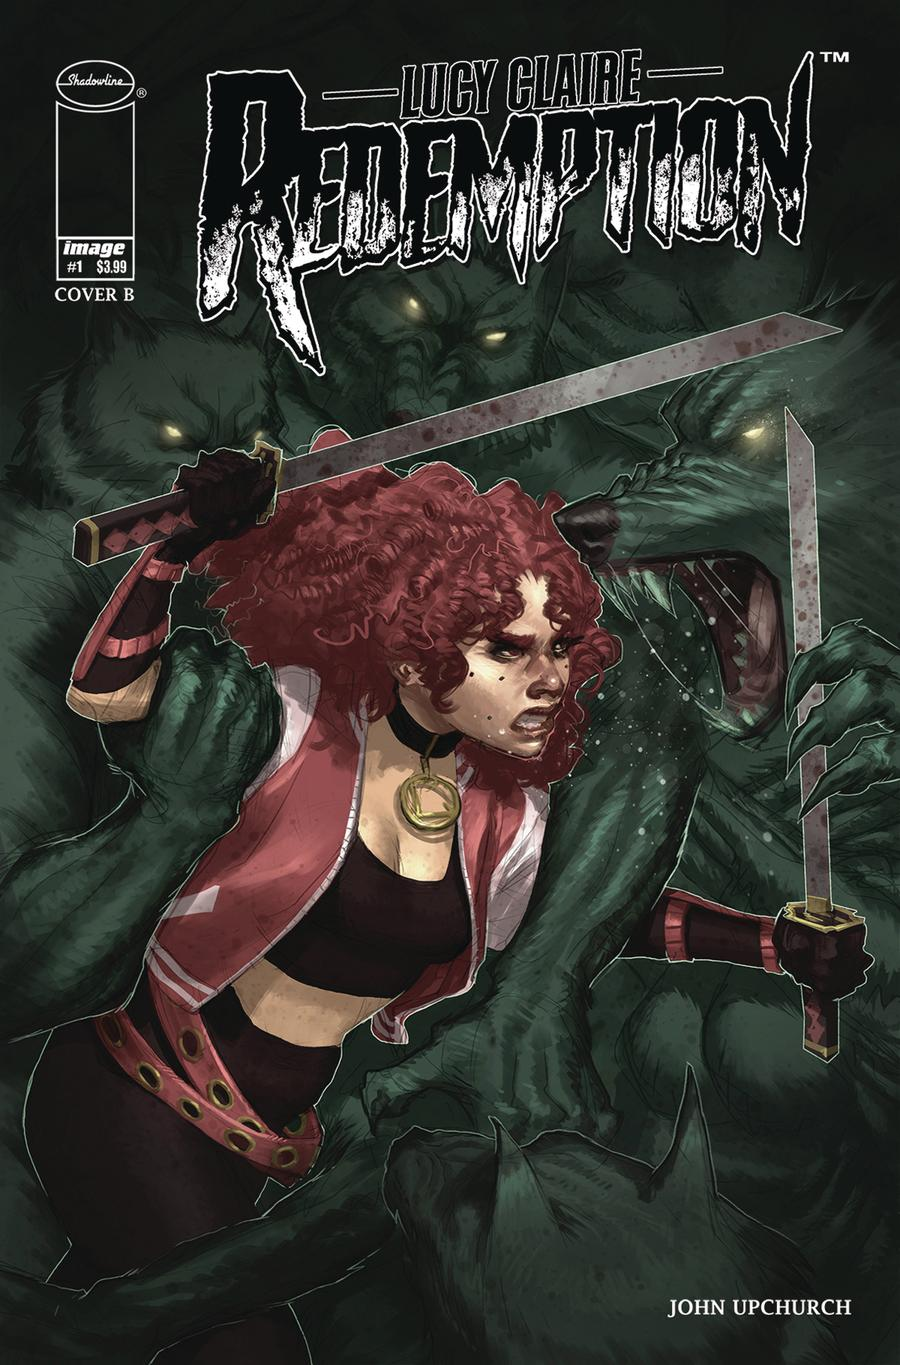 Lucy Claire Redemption #1 Cover B Variant John Upchurch Cover